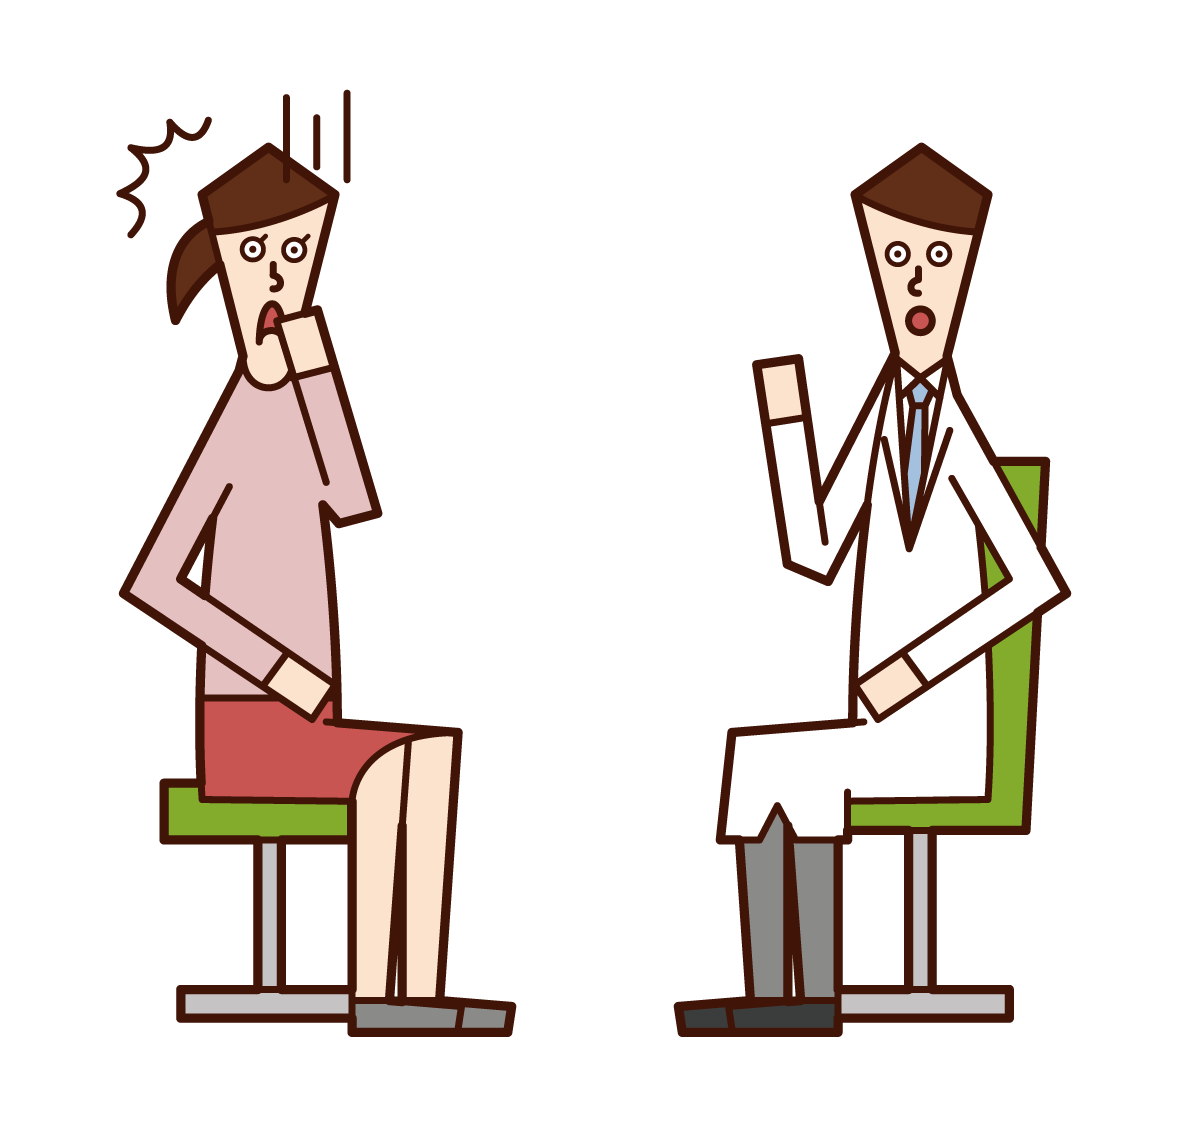 Illustration of a patient (woman) who is told of illness at a medical examination